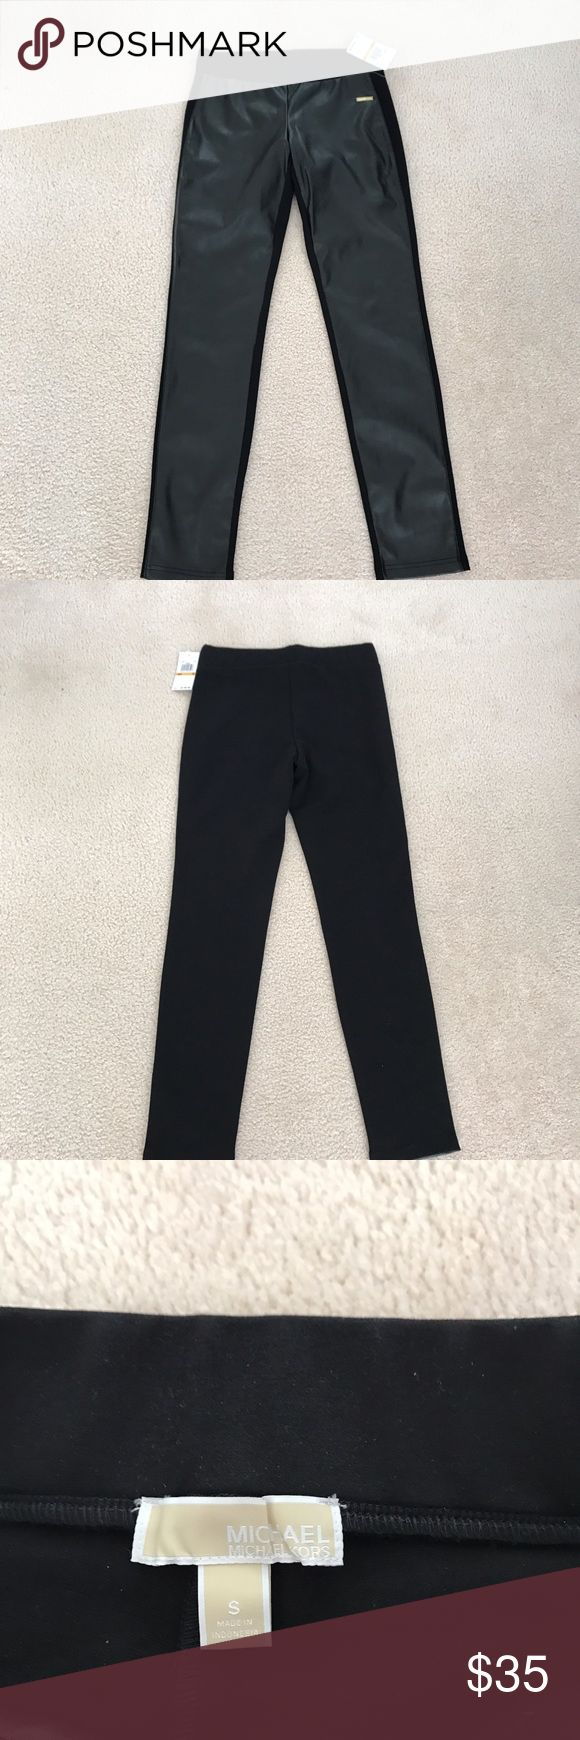 New Michael Kors pleather and cotton leggings - S New Michael Kors man made pleather and cotton leggings size S. Michael Kors Other